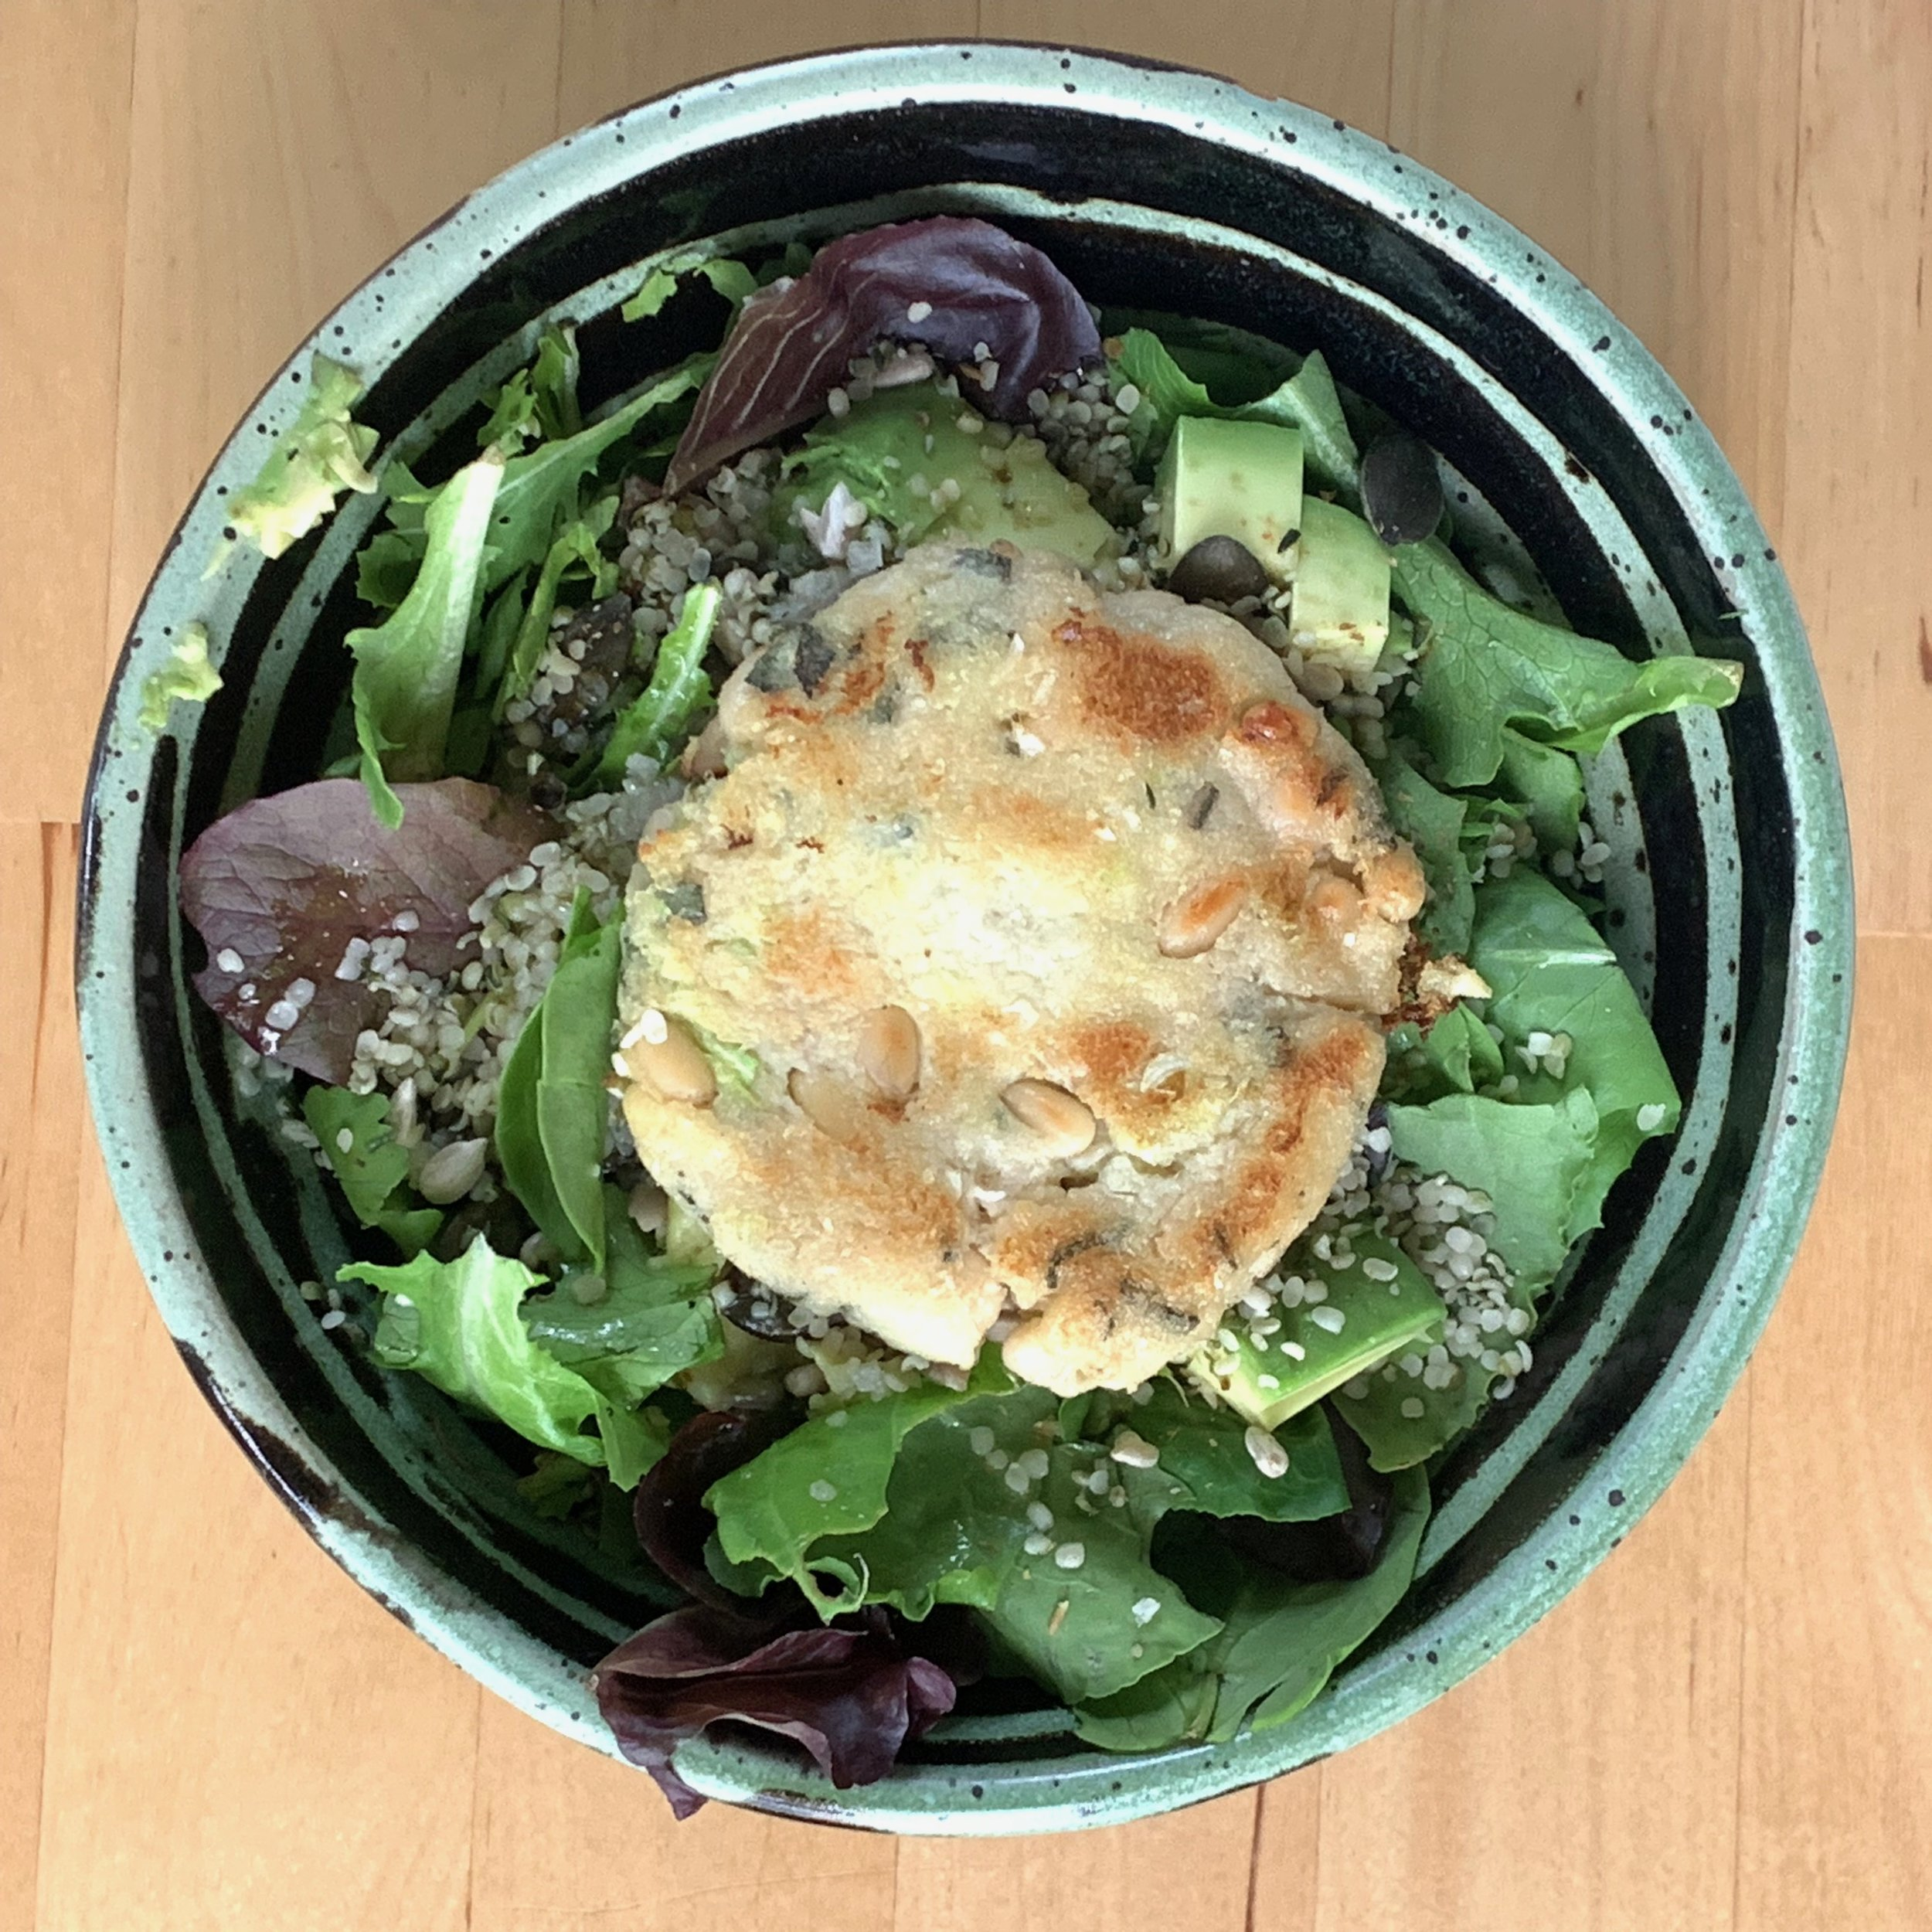 I like to eat my cabbage cakes without a bun, so I often toss it on top of a salad.